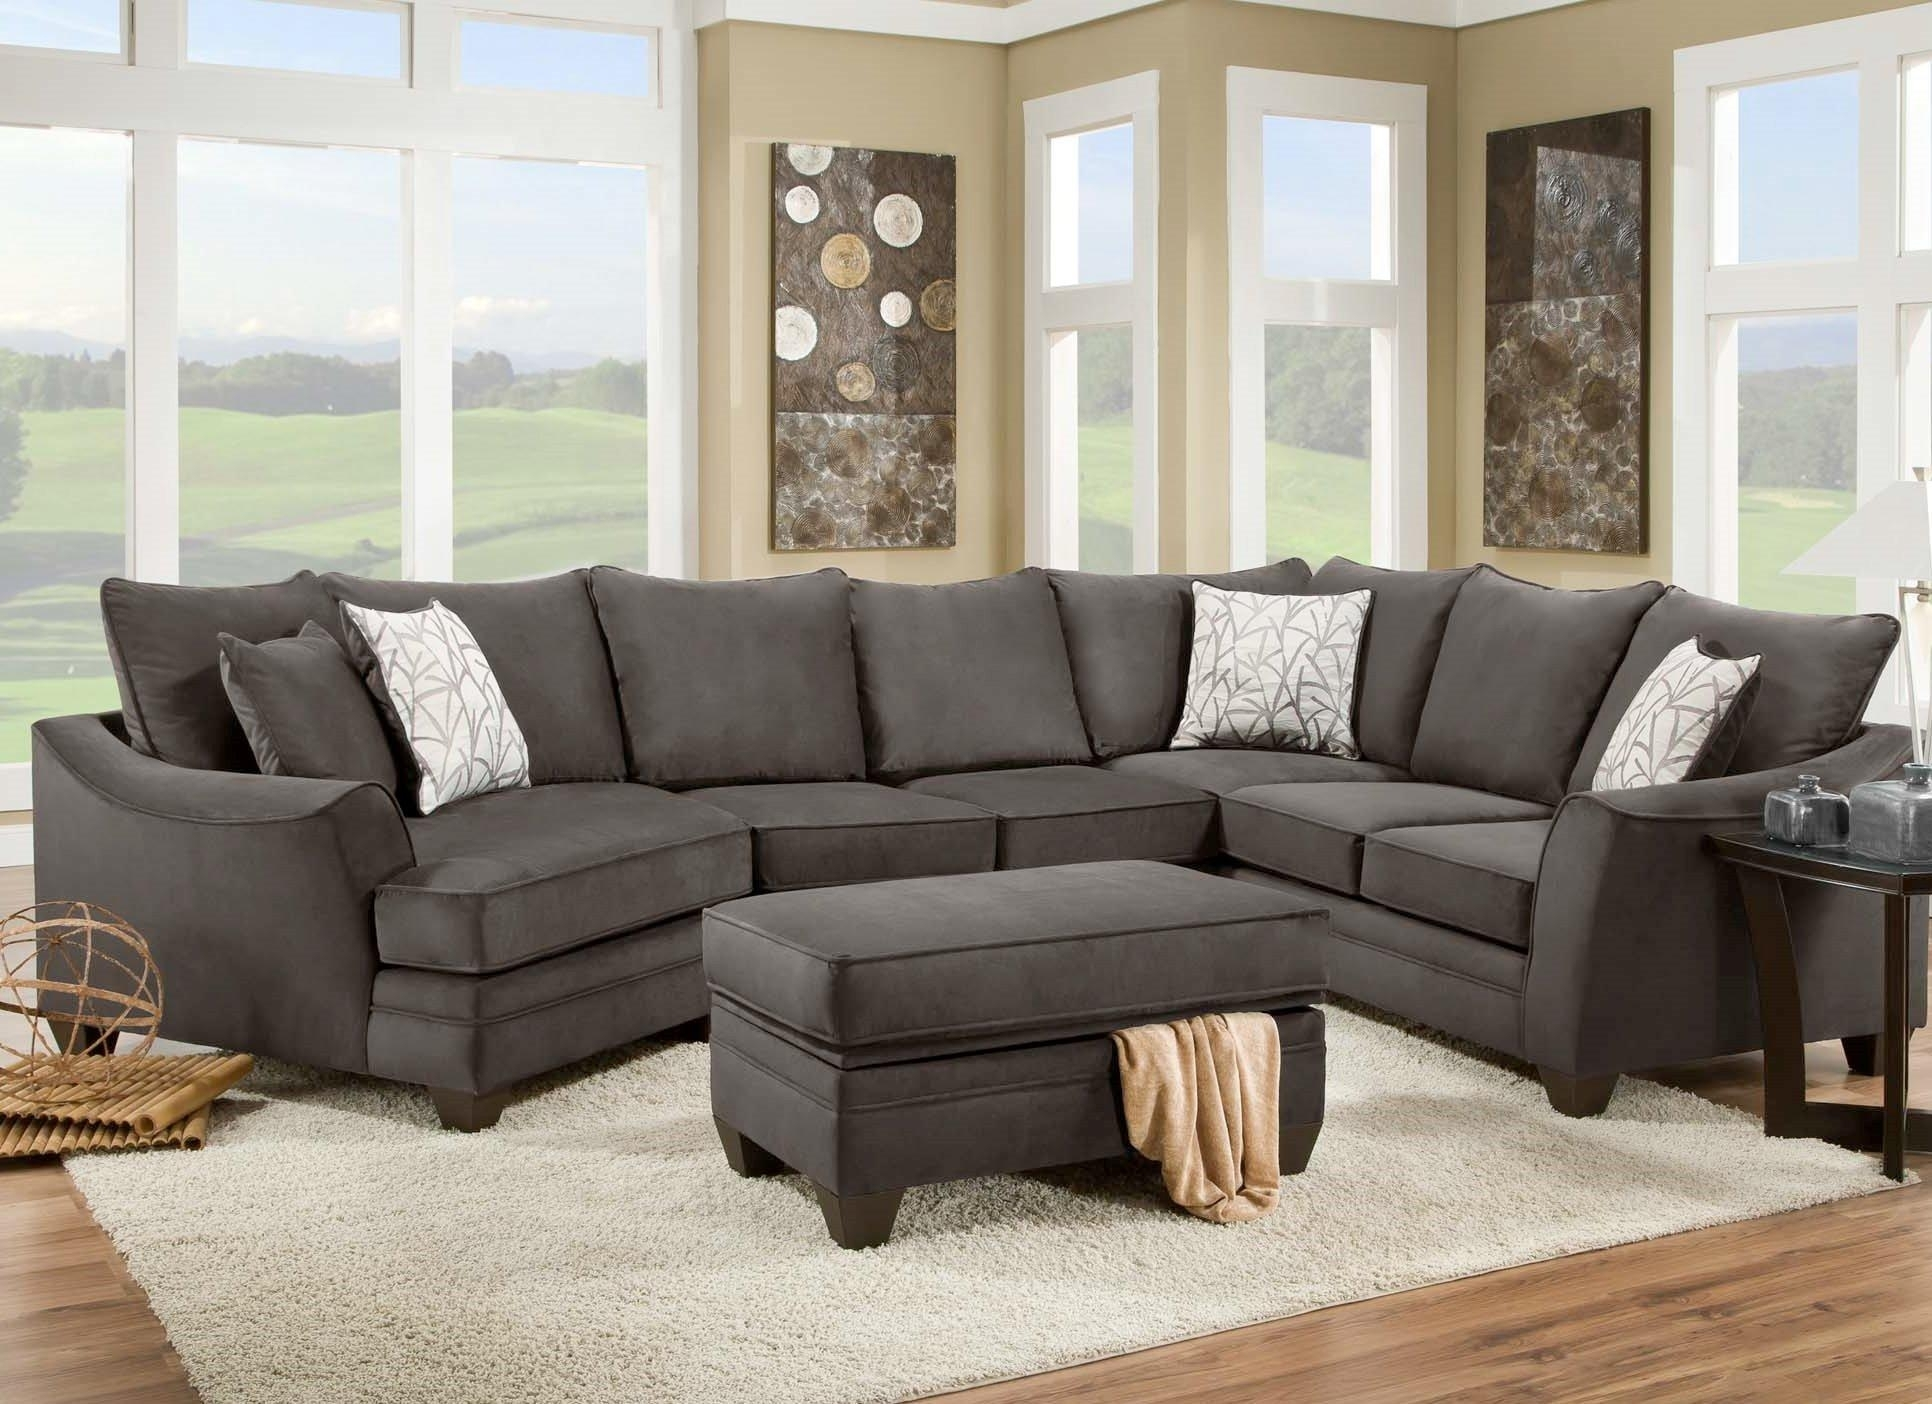 American Furniture 3810 Sectional Sofa That Seats 5 With Left Side Throughout Sectional Sofas In North Carolina (View 1 of 10)